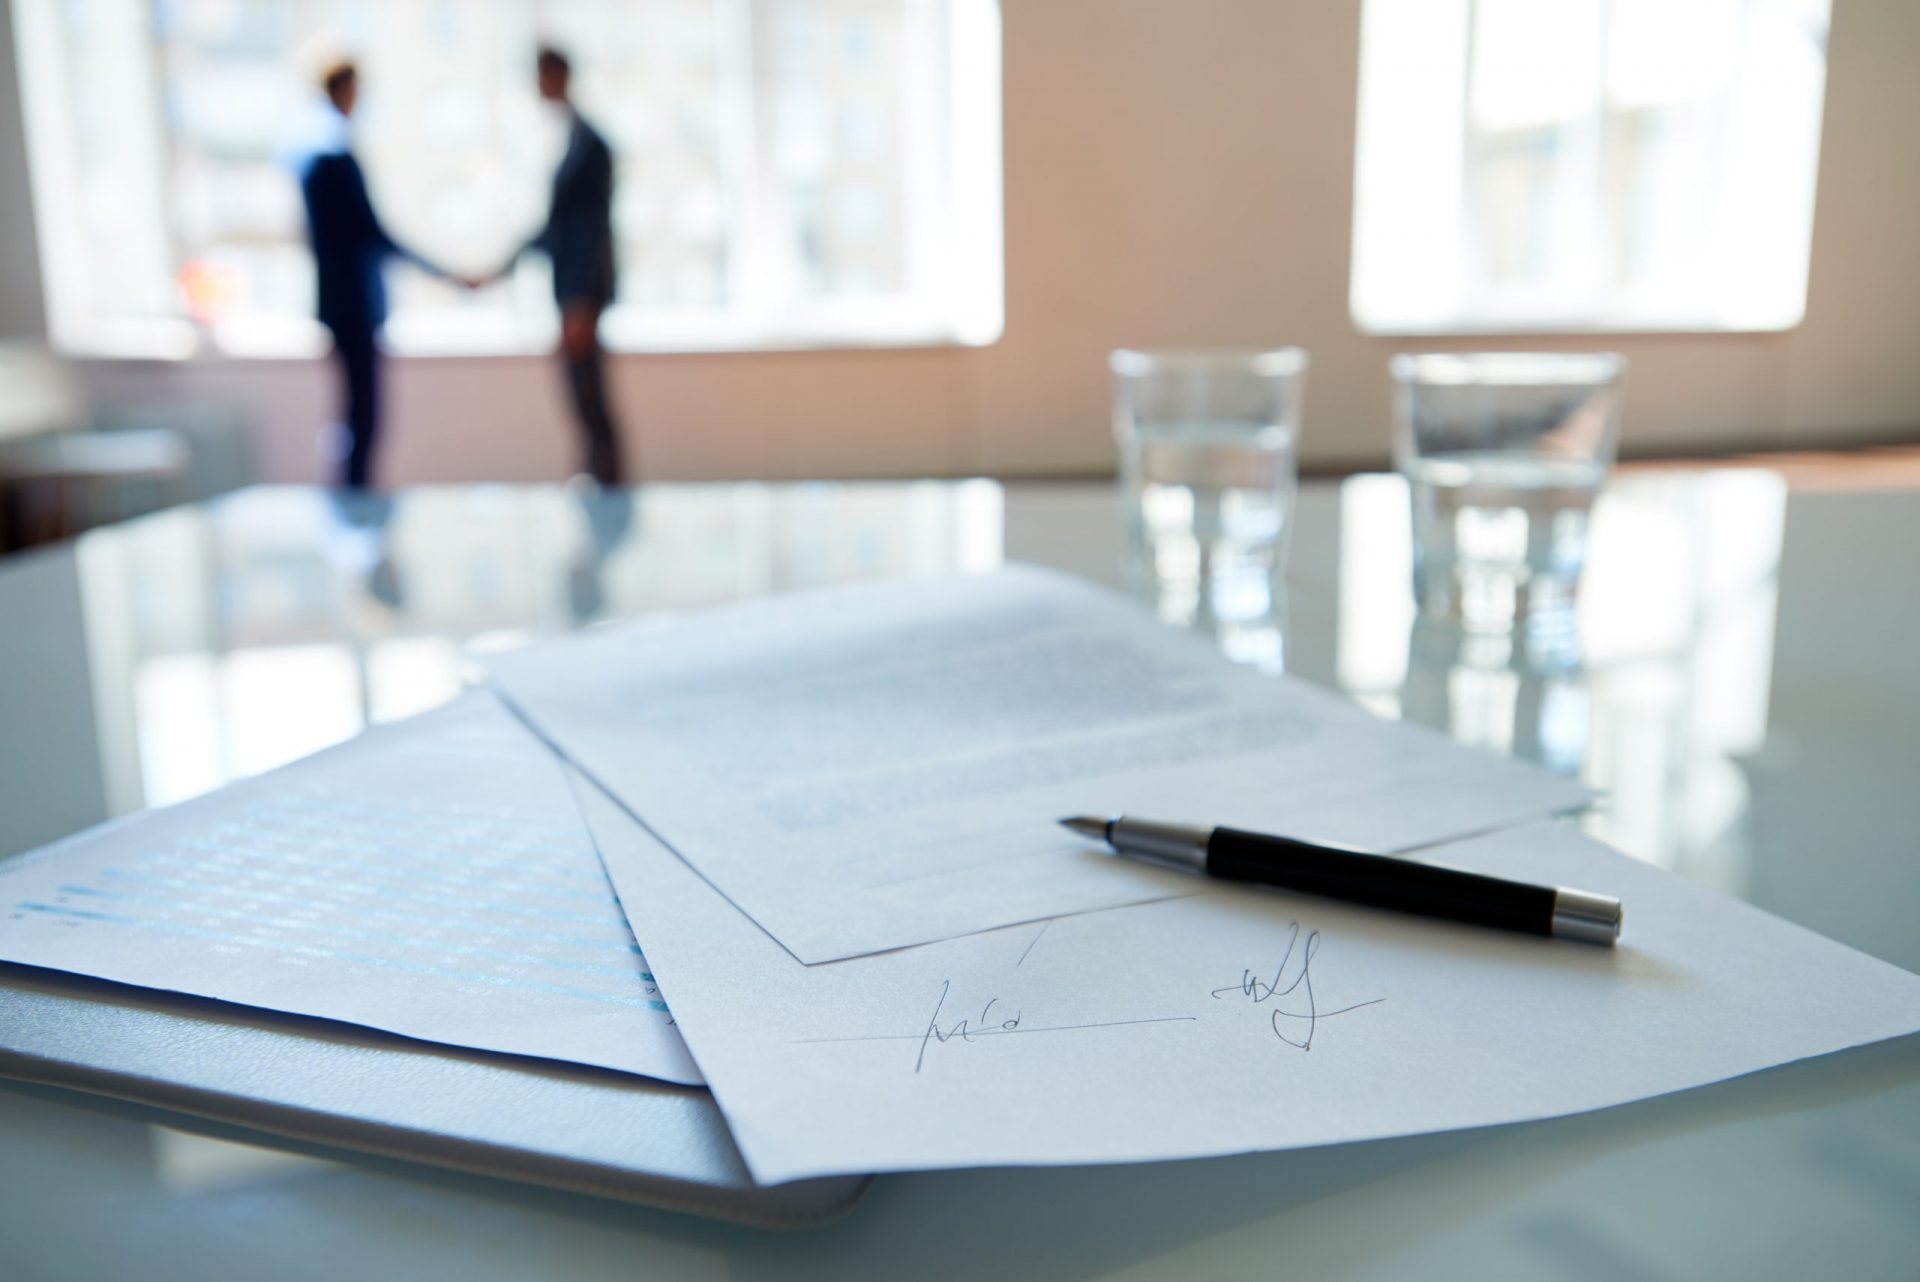 Signed business contract lying on table, business partners shaking hands in the background